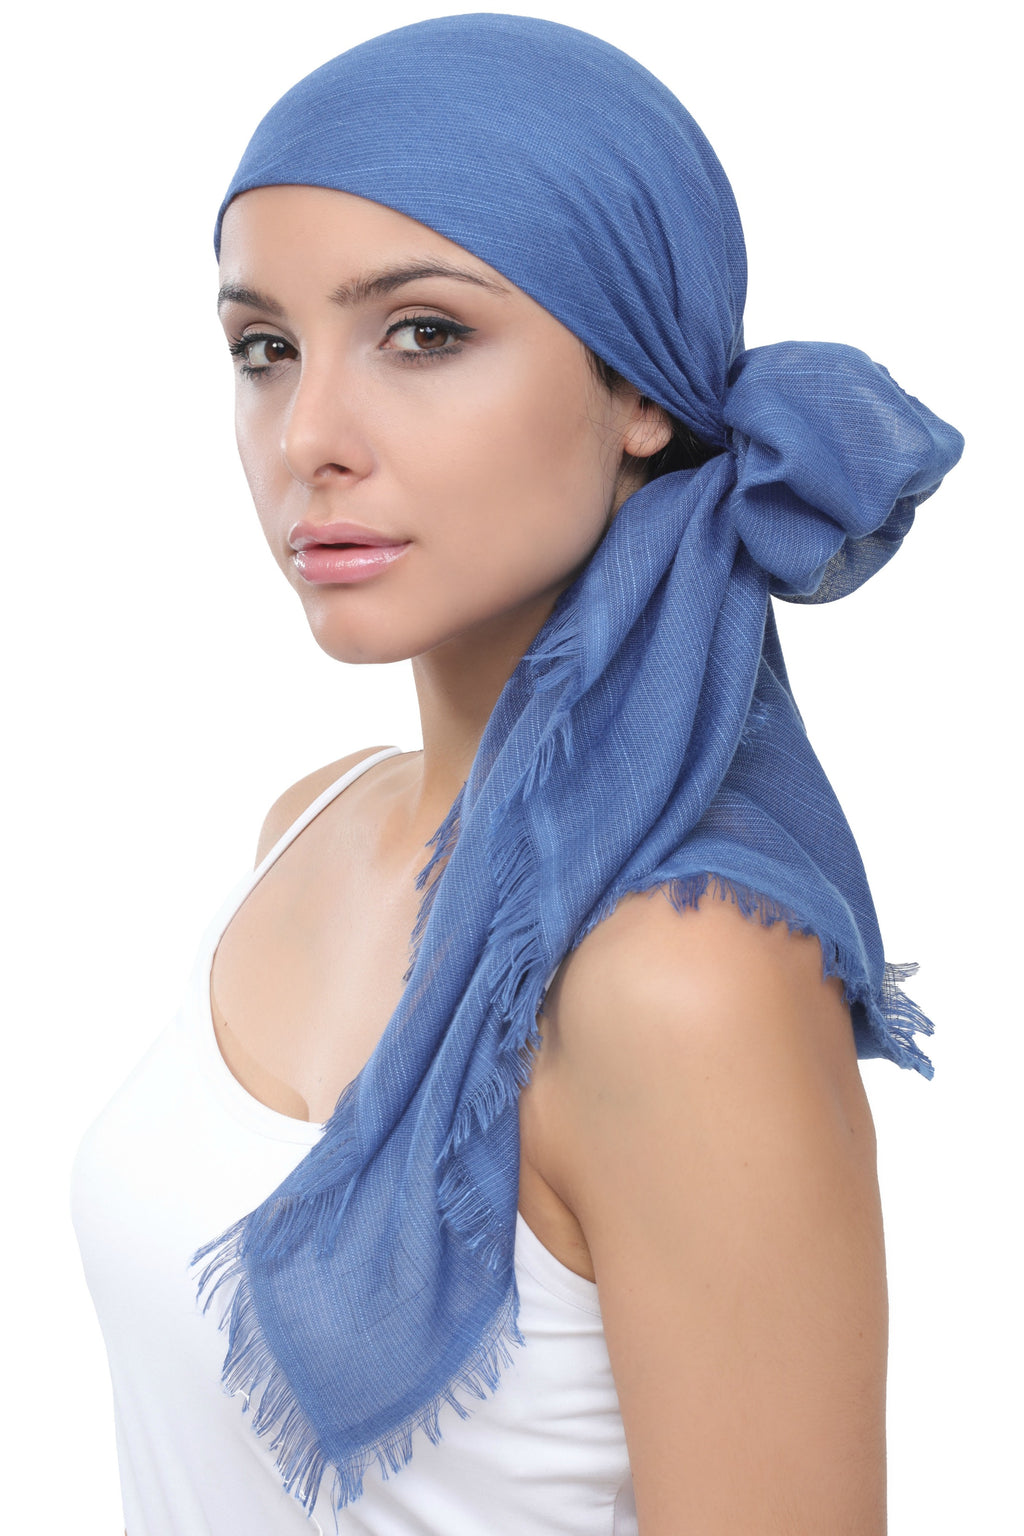 Ultra Soft Head Scarf - Air Force Blue with Edges